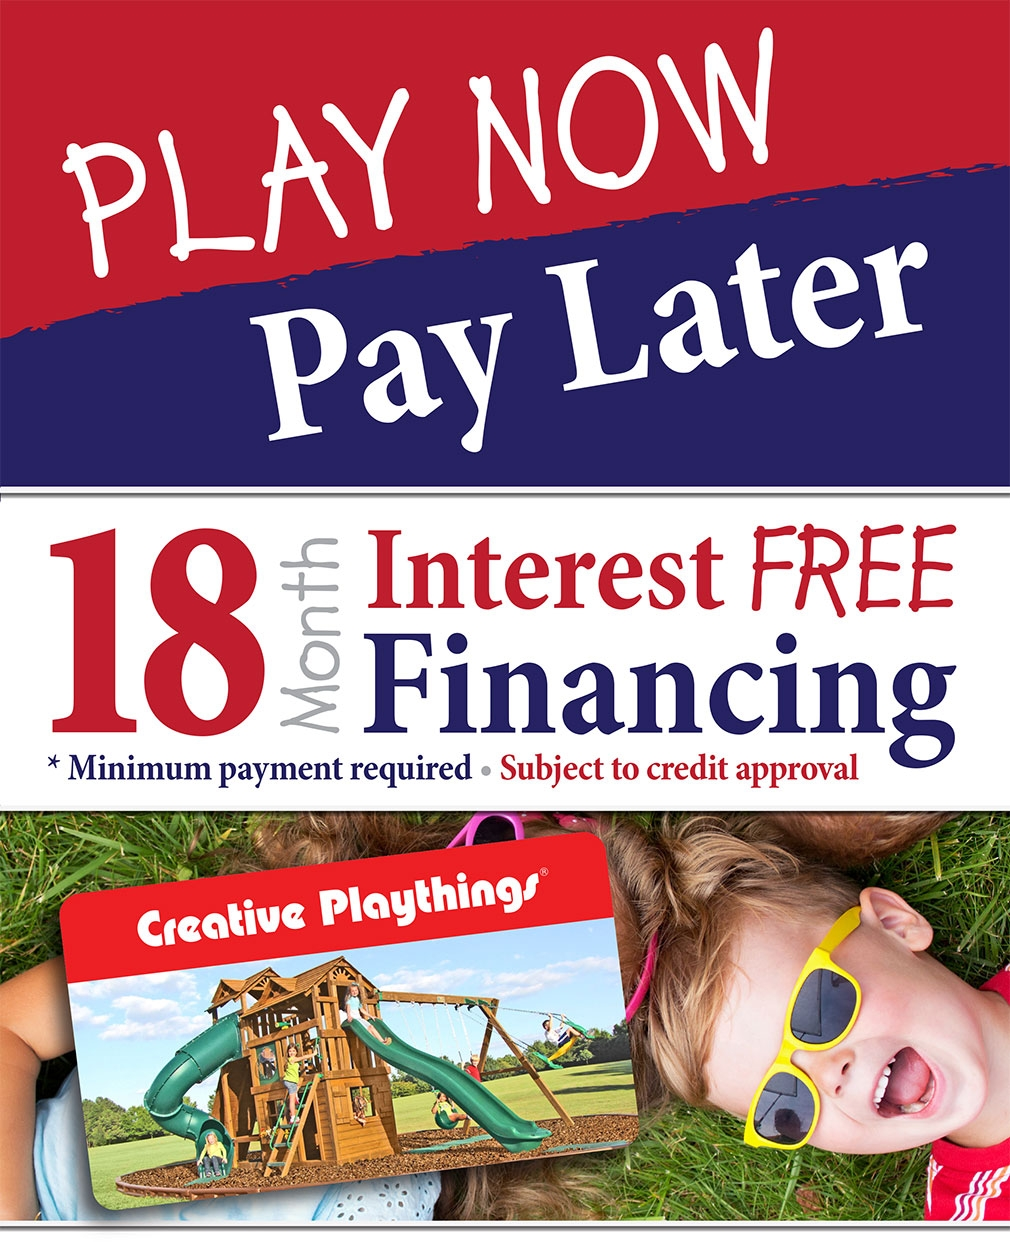 Interest FREE Financing for 18 Months!